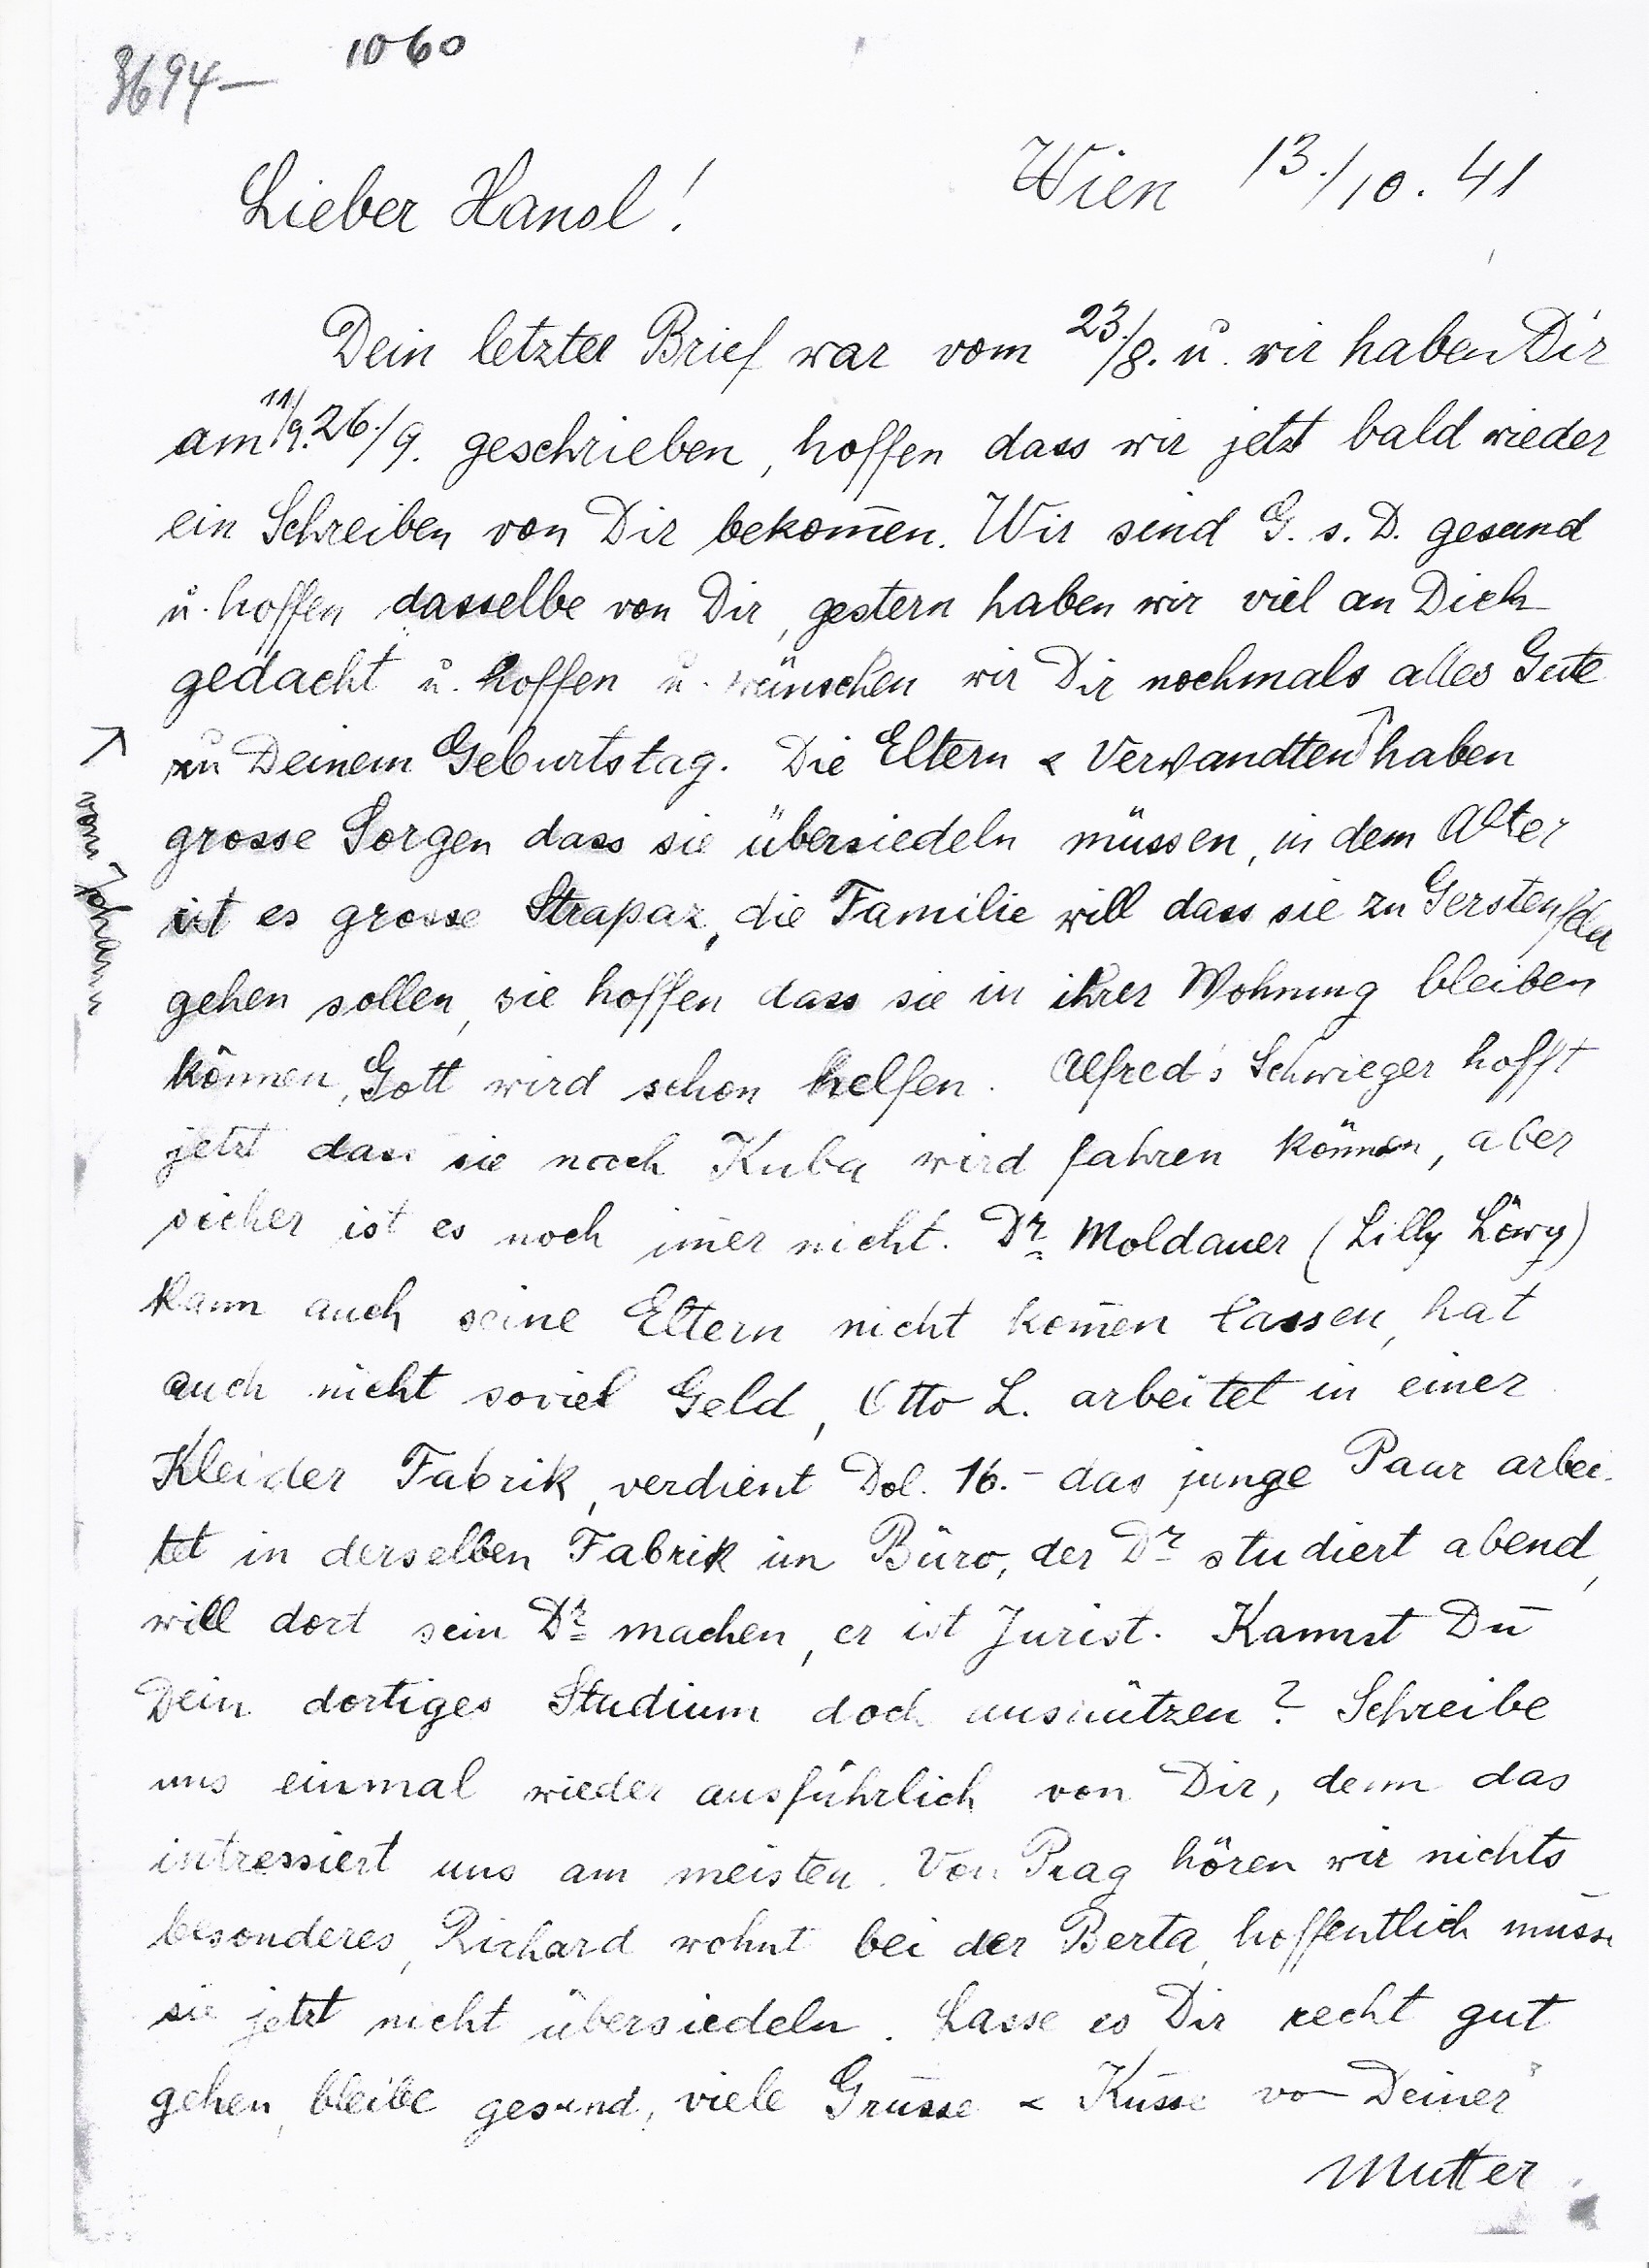 »Letter from Klara Aninger to her son Dr. Hans Aninger, who had been able, probably with the help of the Latzko family, to leave Salzburg. Dr. Hans Aninger married Irma Rosencrans in New York, the mother of my unlce, Dr. Ernest Rosencrans. 